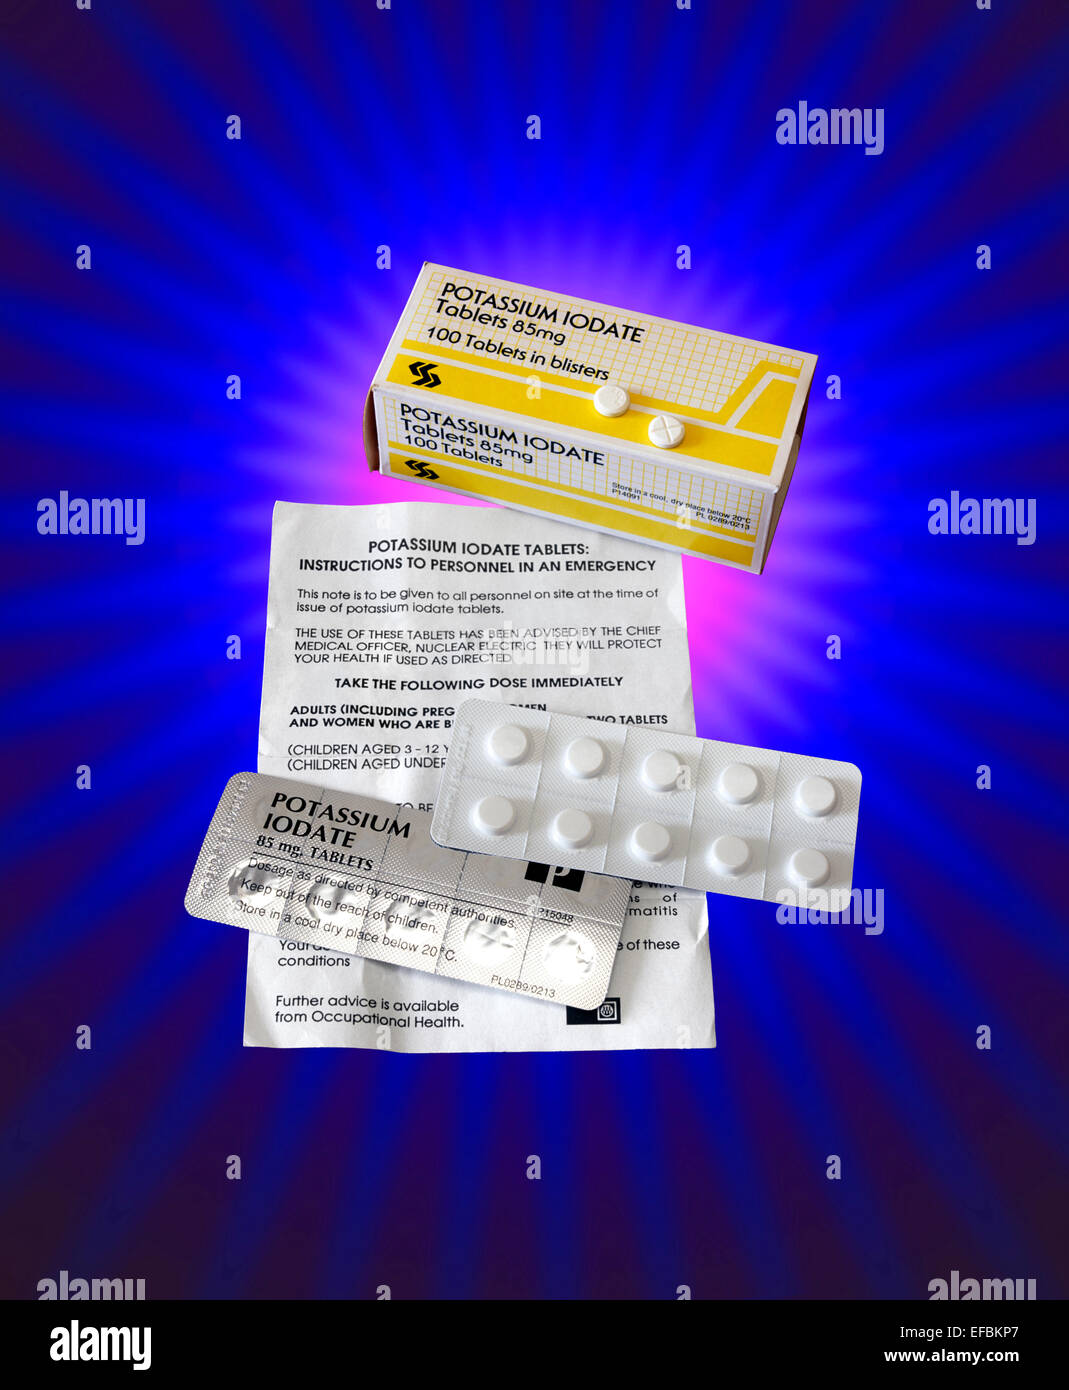 Potassium iodate tablets for use in the event of a radioactive leak around Hinkley Point nuclear power station. - Stock Image